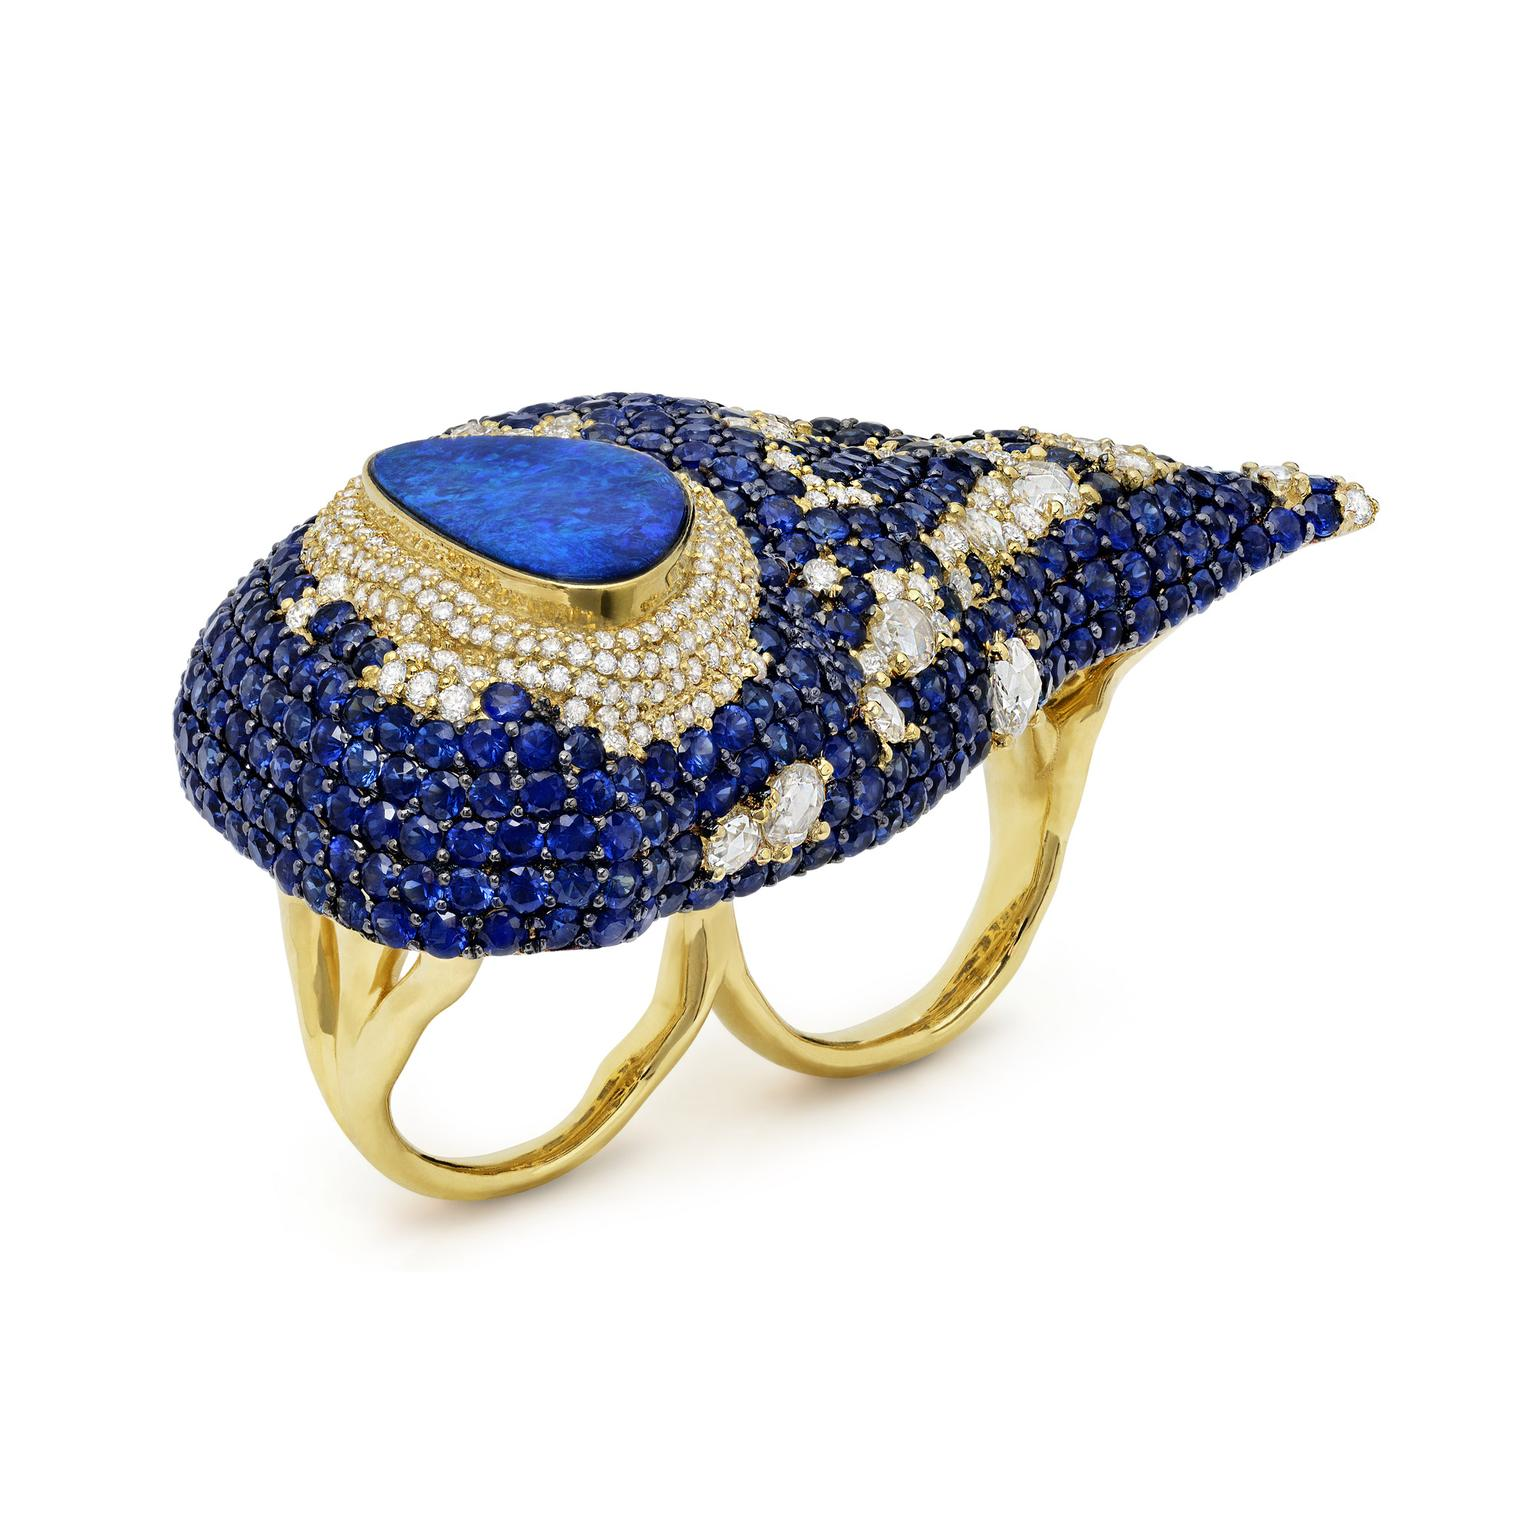 Michael John opal and sapphire two-finger ring